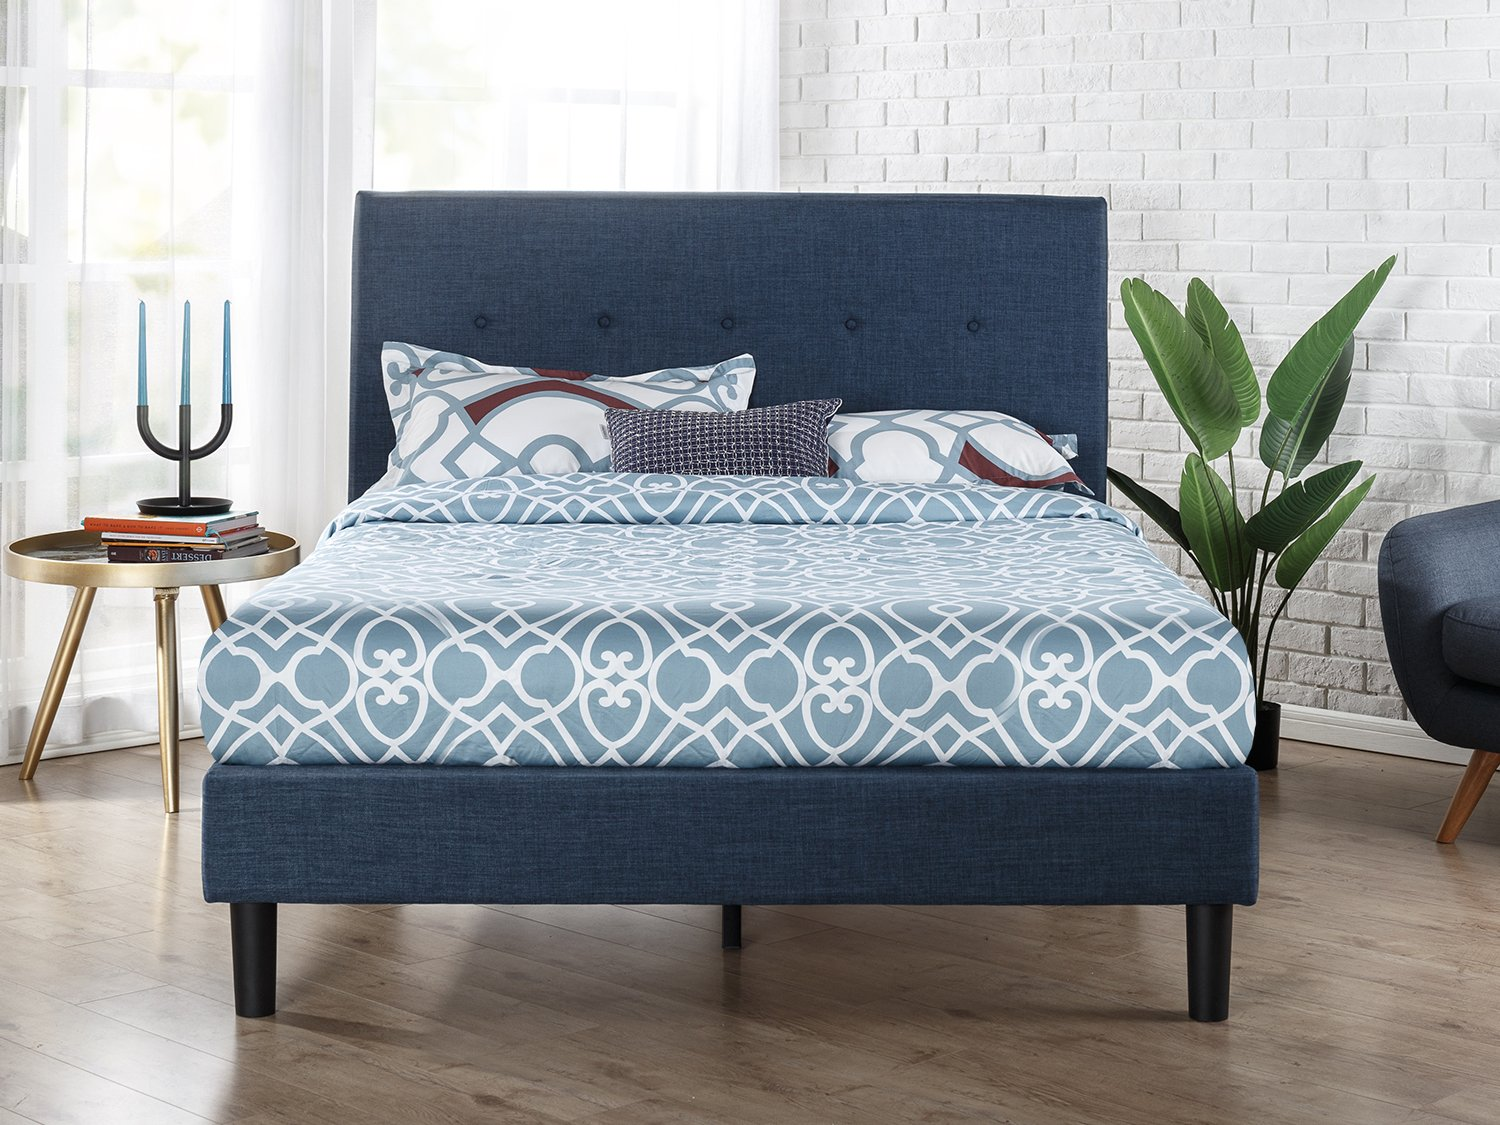 Zinus Omkaram Upholstered Navy Button Detailed Platform Bed / Mattress Foundation / Easy Assembly / Strong Wood Slat Support, Queen by Zinus